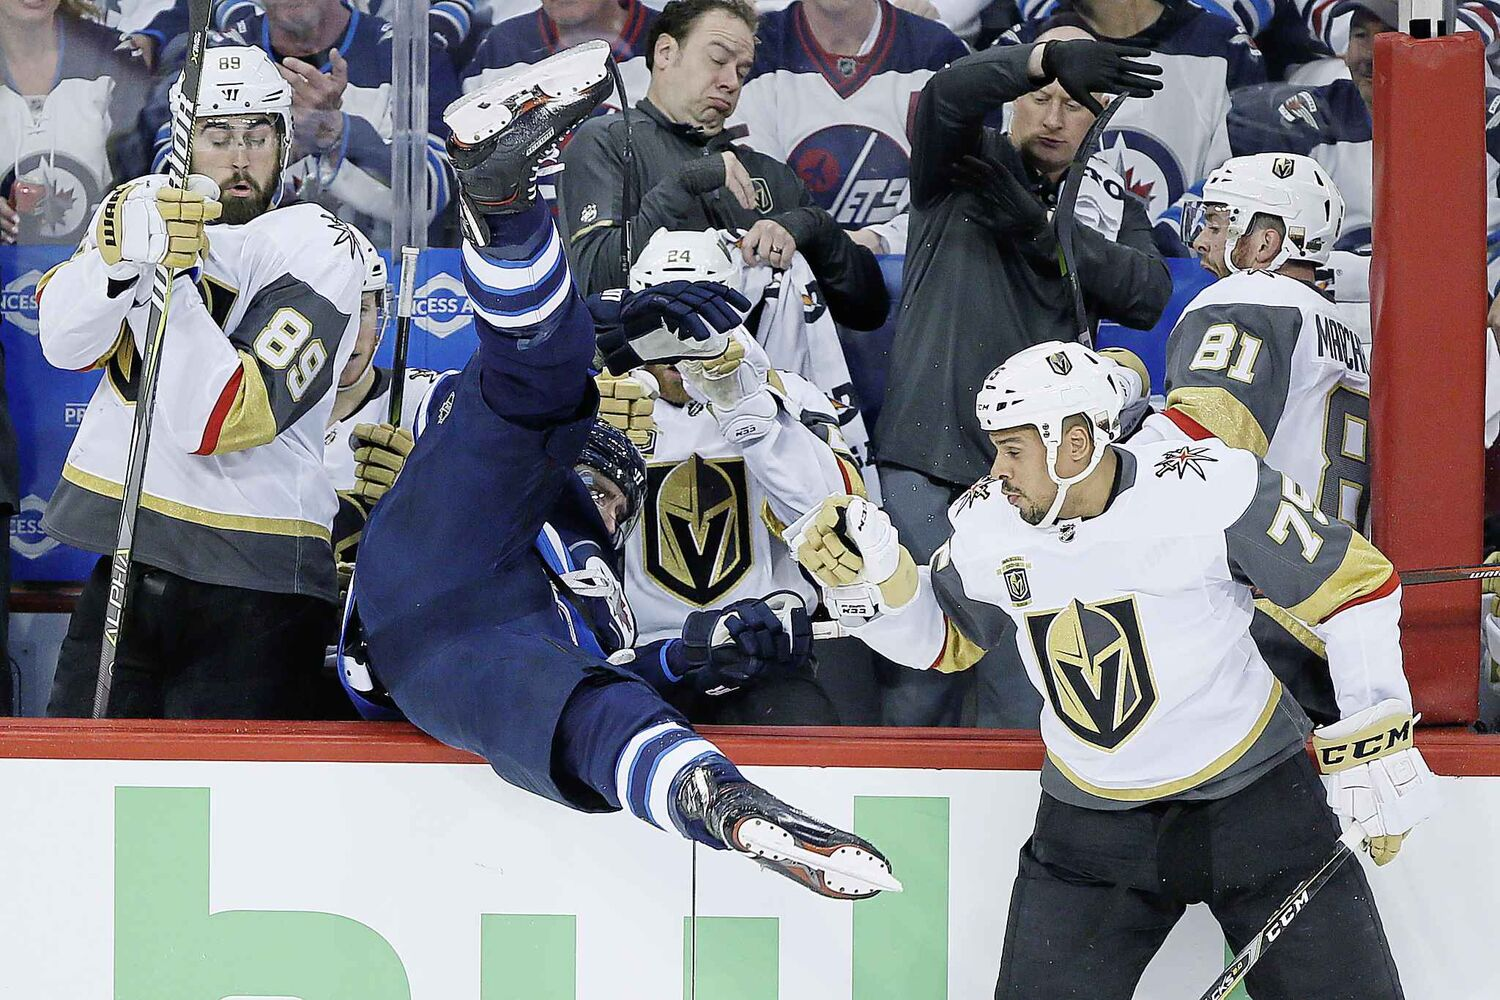 JOHN WOODS / THE CANADIAN PRESS</p><p>Winnipeg Jets' Blake Wheeler (26) gets dumped over the Vegas boards by Vegas Golden KnightsÕ Ryan Reaves (75) during first period of game one action in the NHL Western Conference Final in Winnipeg on Saturday, May 12, 2018.</p>